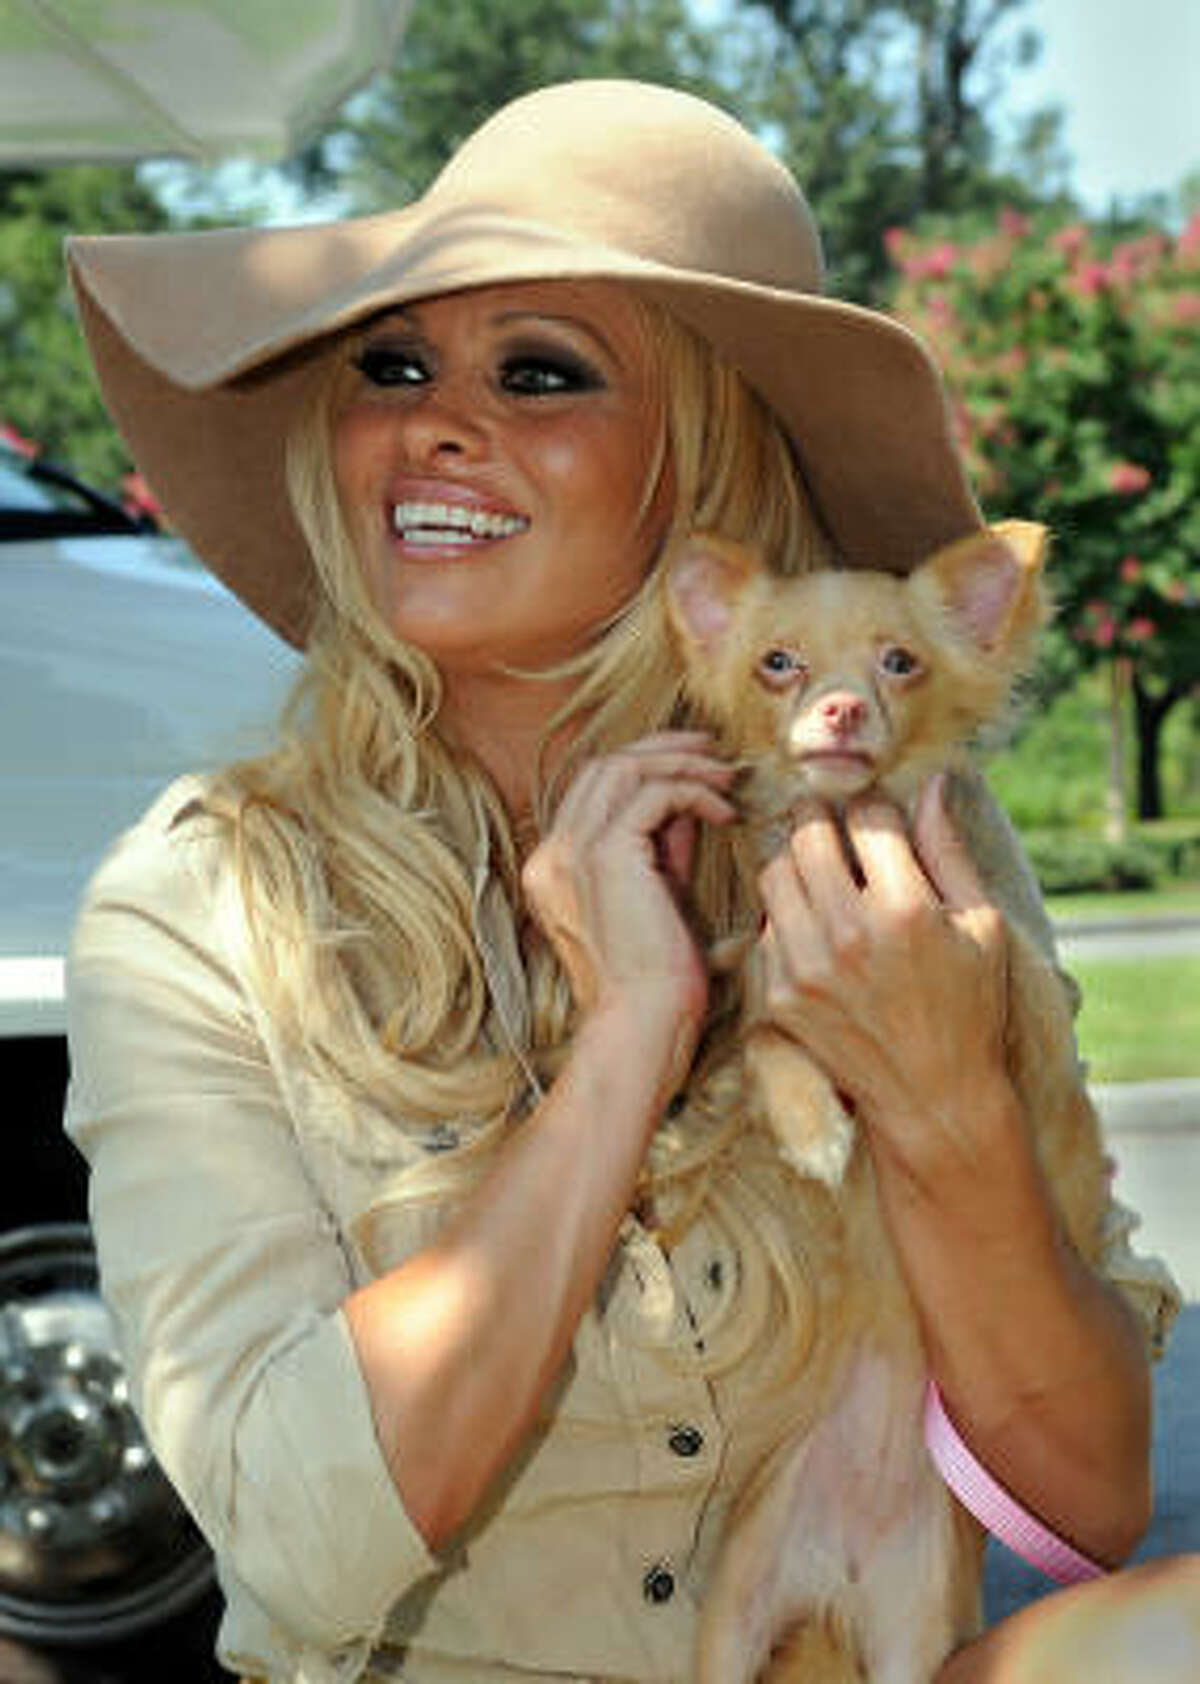 Actress Pamela Anderson holds an orphaned Chihuahua mix that she named Bardot on Monday, Aug. 2, 2010, in New Orleans. Anderson paid to move about 50 dogs that lost their homes due to the oil spill from Louisiana to Virginia. The actress chose two dogs, including Bardot, to adopt herself.